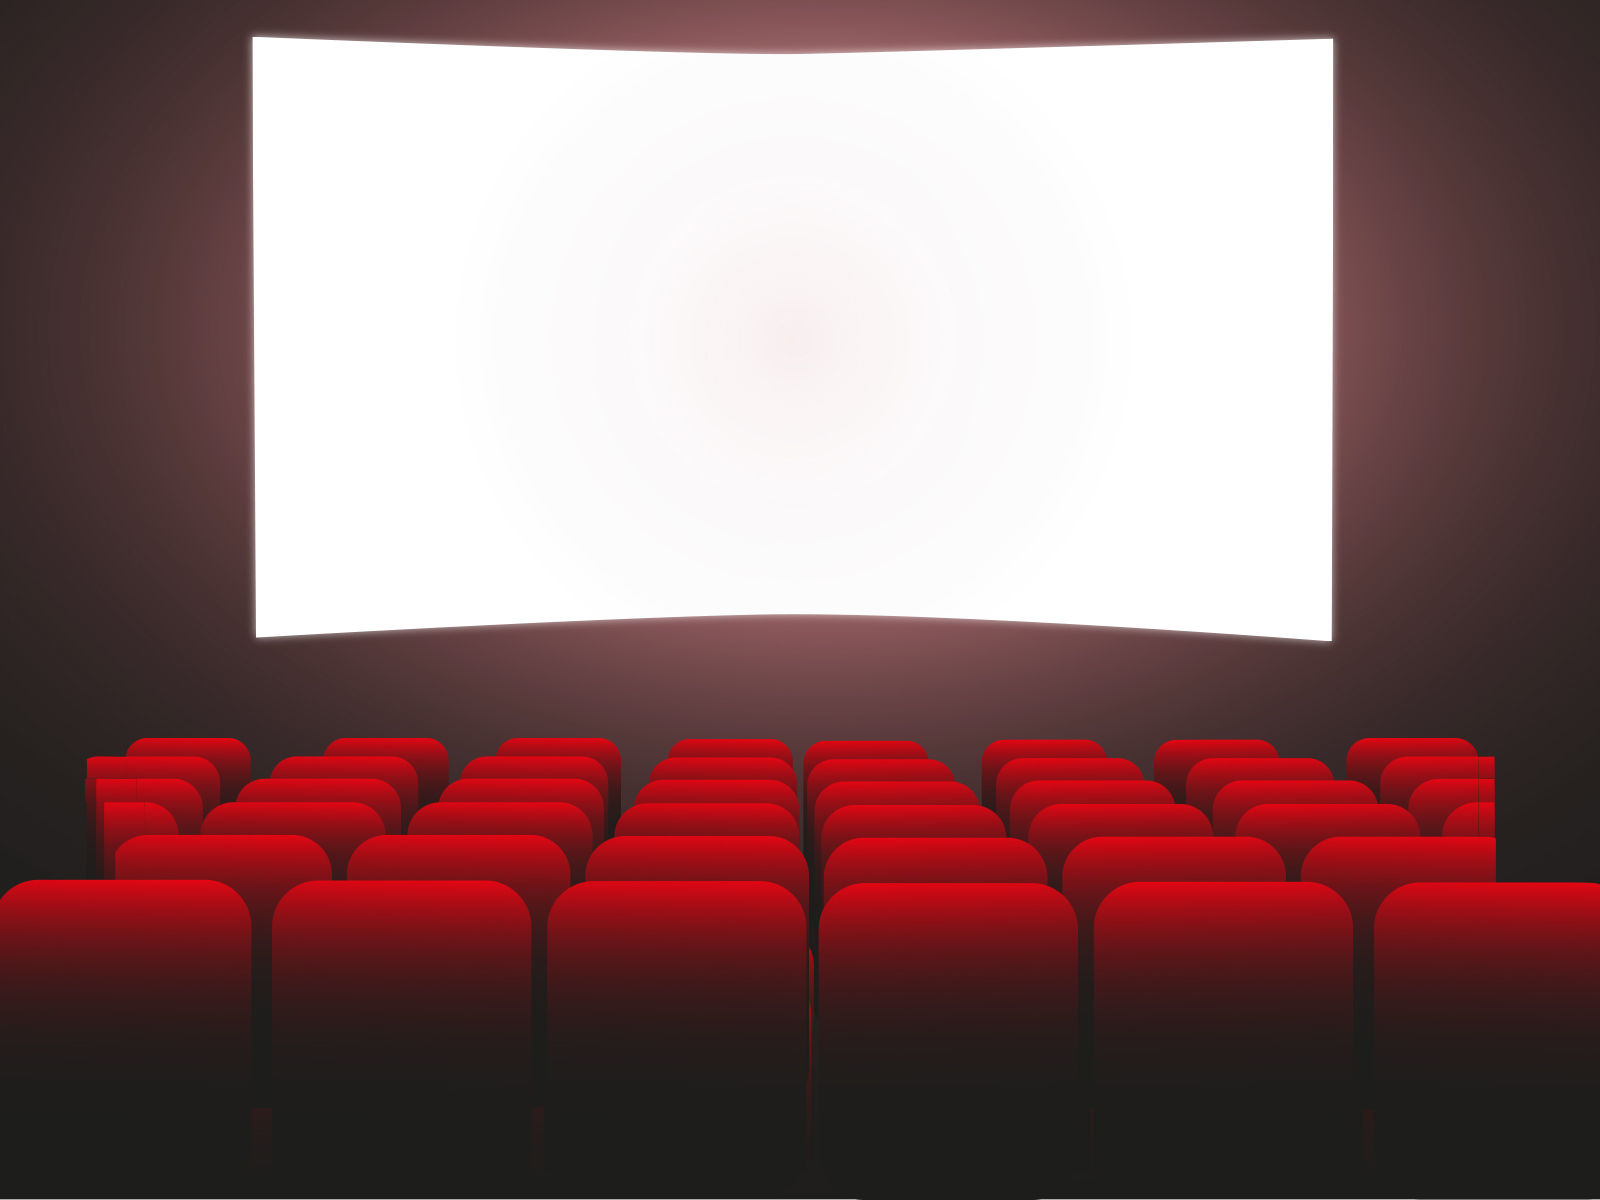 movie theater backgrounds black  movie   tv  red movie theater popcorn clipart Movie Thearter Popcorn